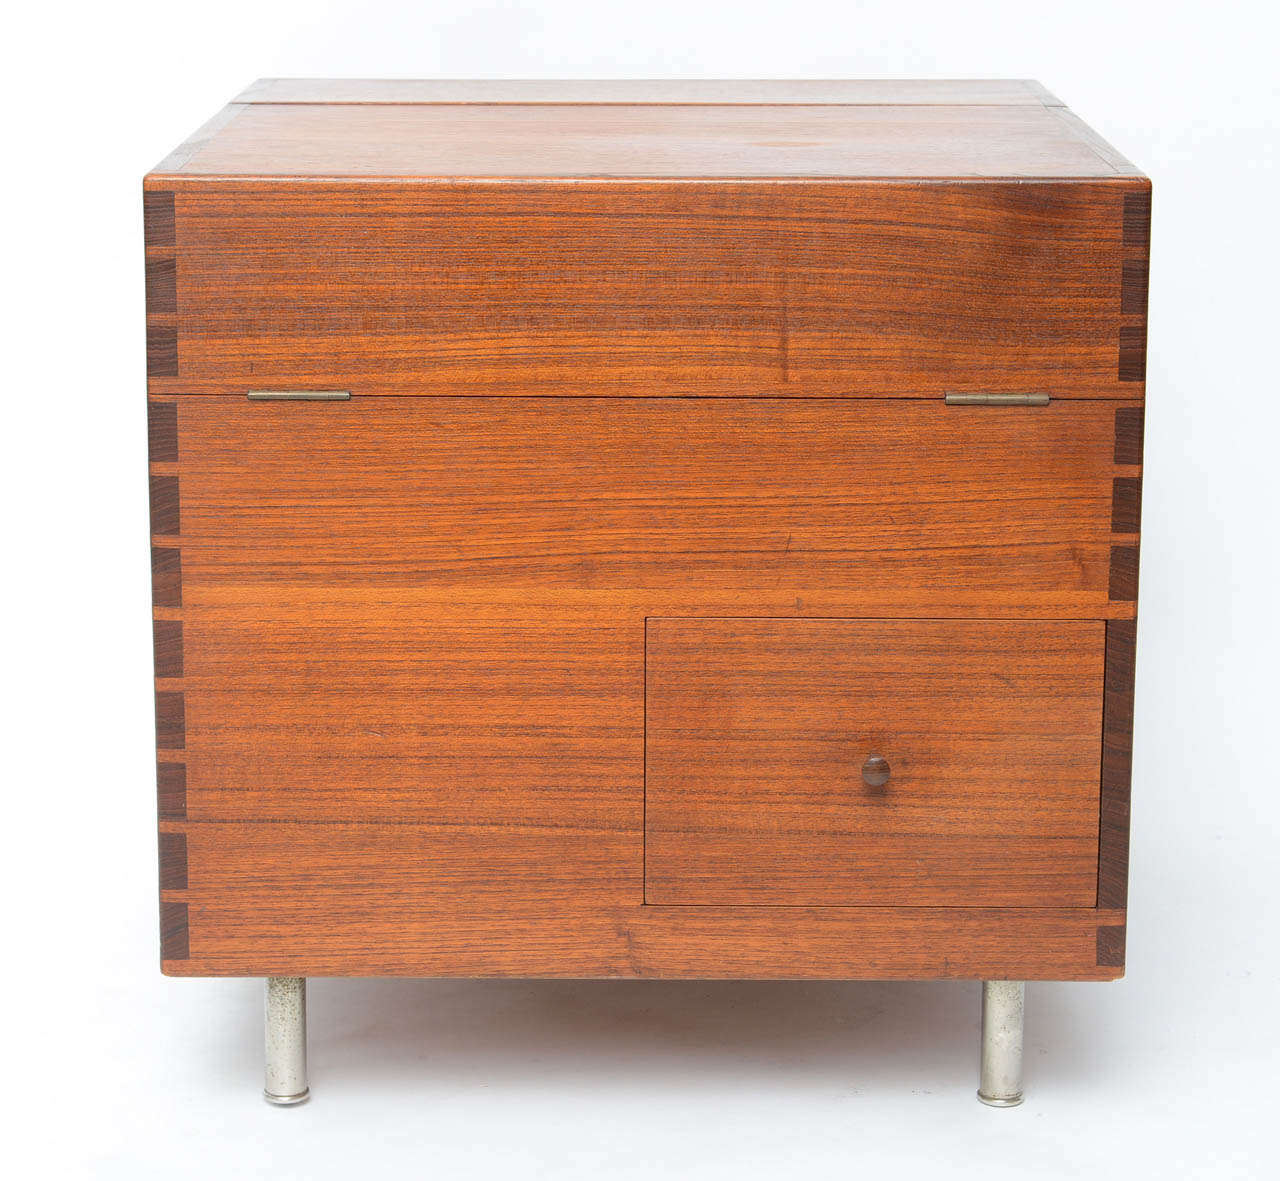 Rare and great design by Hans Wegner. Bar features one drawer and a hinged top concealing storage. Signed with branded manufacturer's mark to underside.